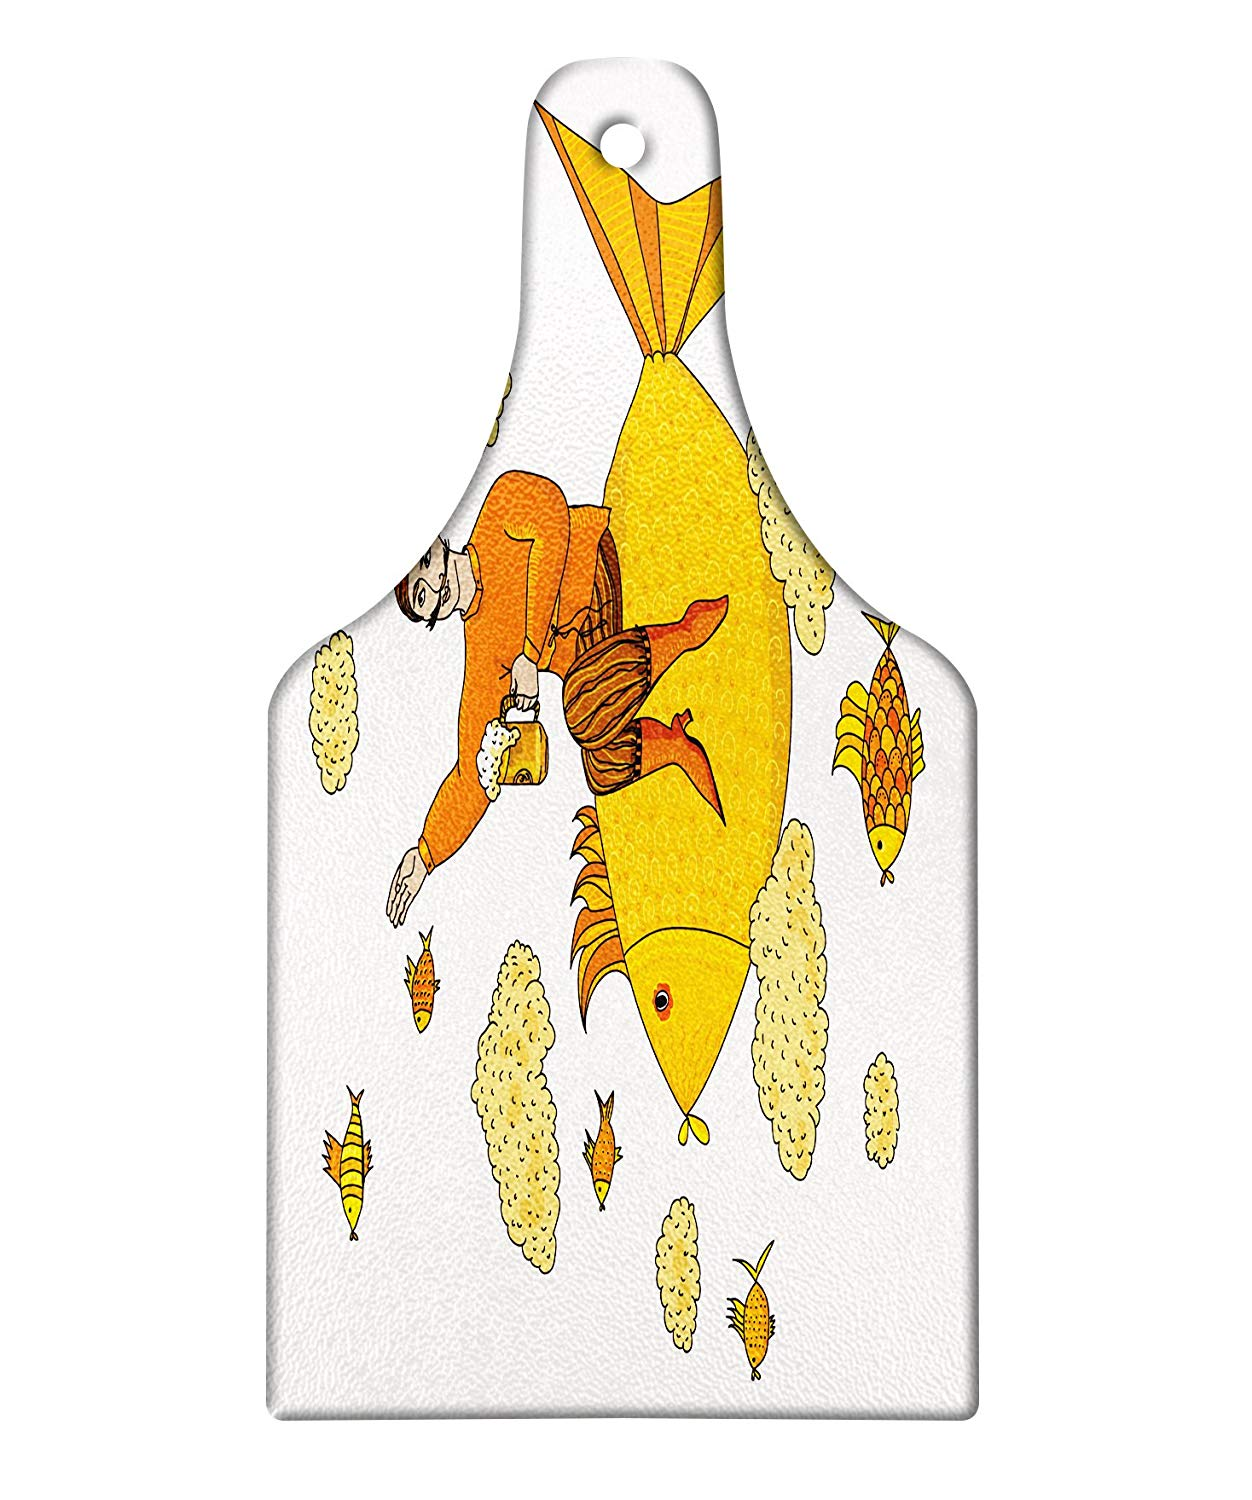 Fish in the shape of a wine glass clipart transparent library Amazon.com: Lunarable Manly Cutting Board, Man Holding Glass of Beer ... transparent library